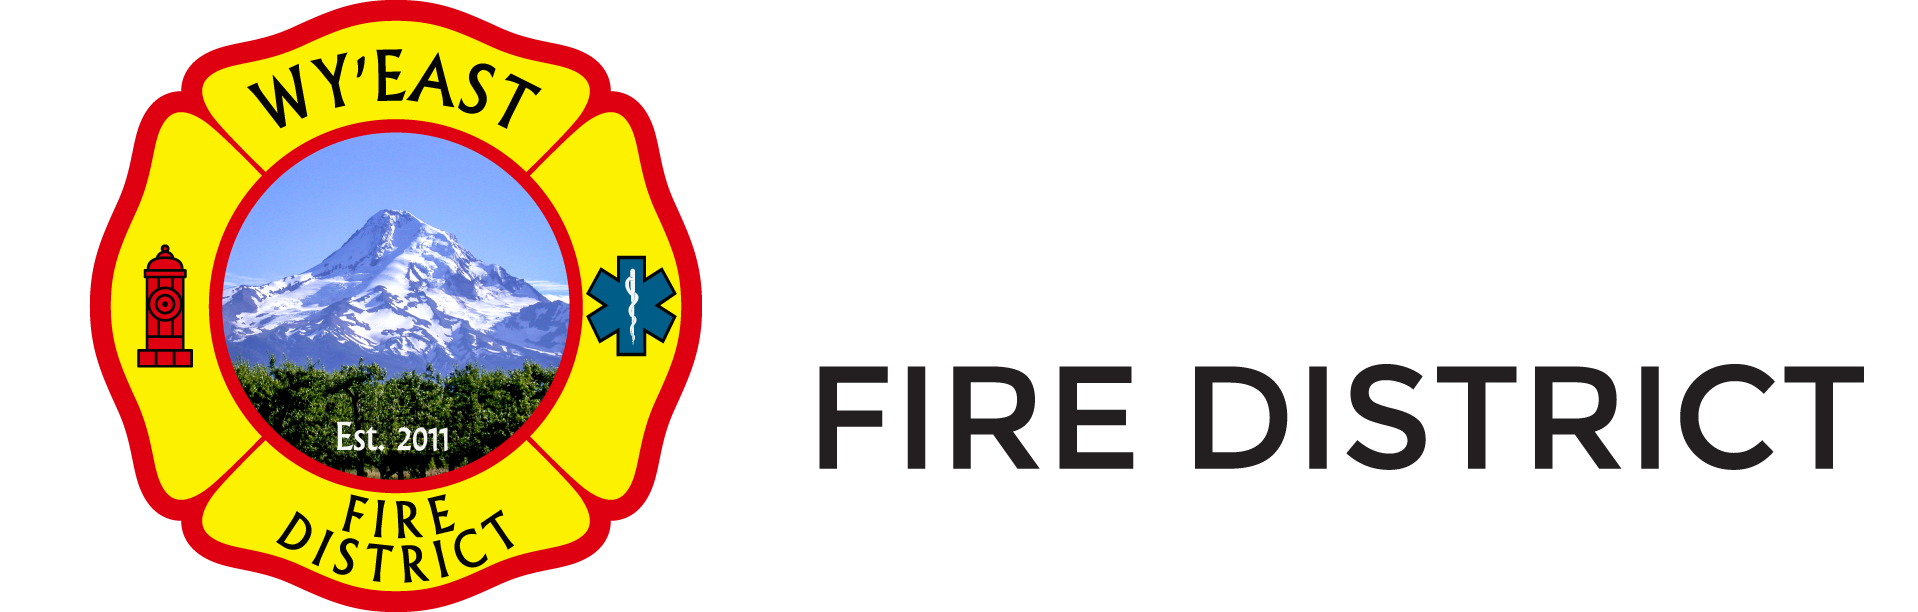 Wy'east Fire District